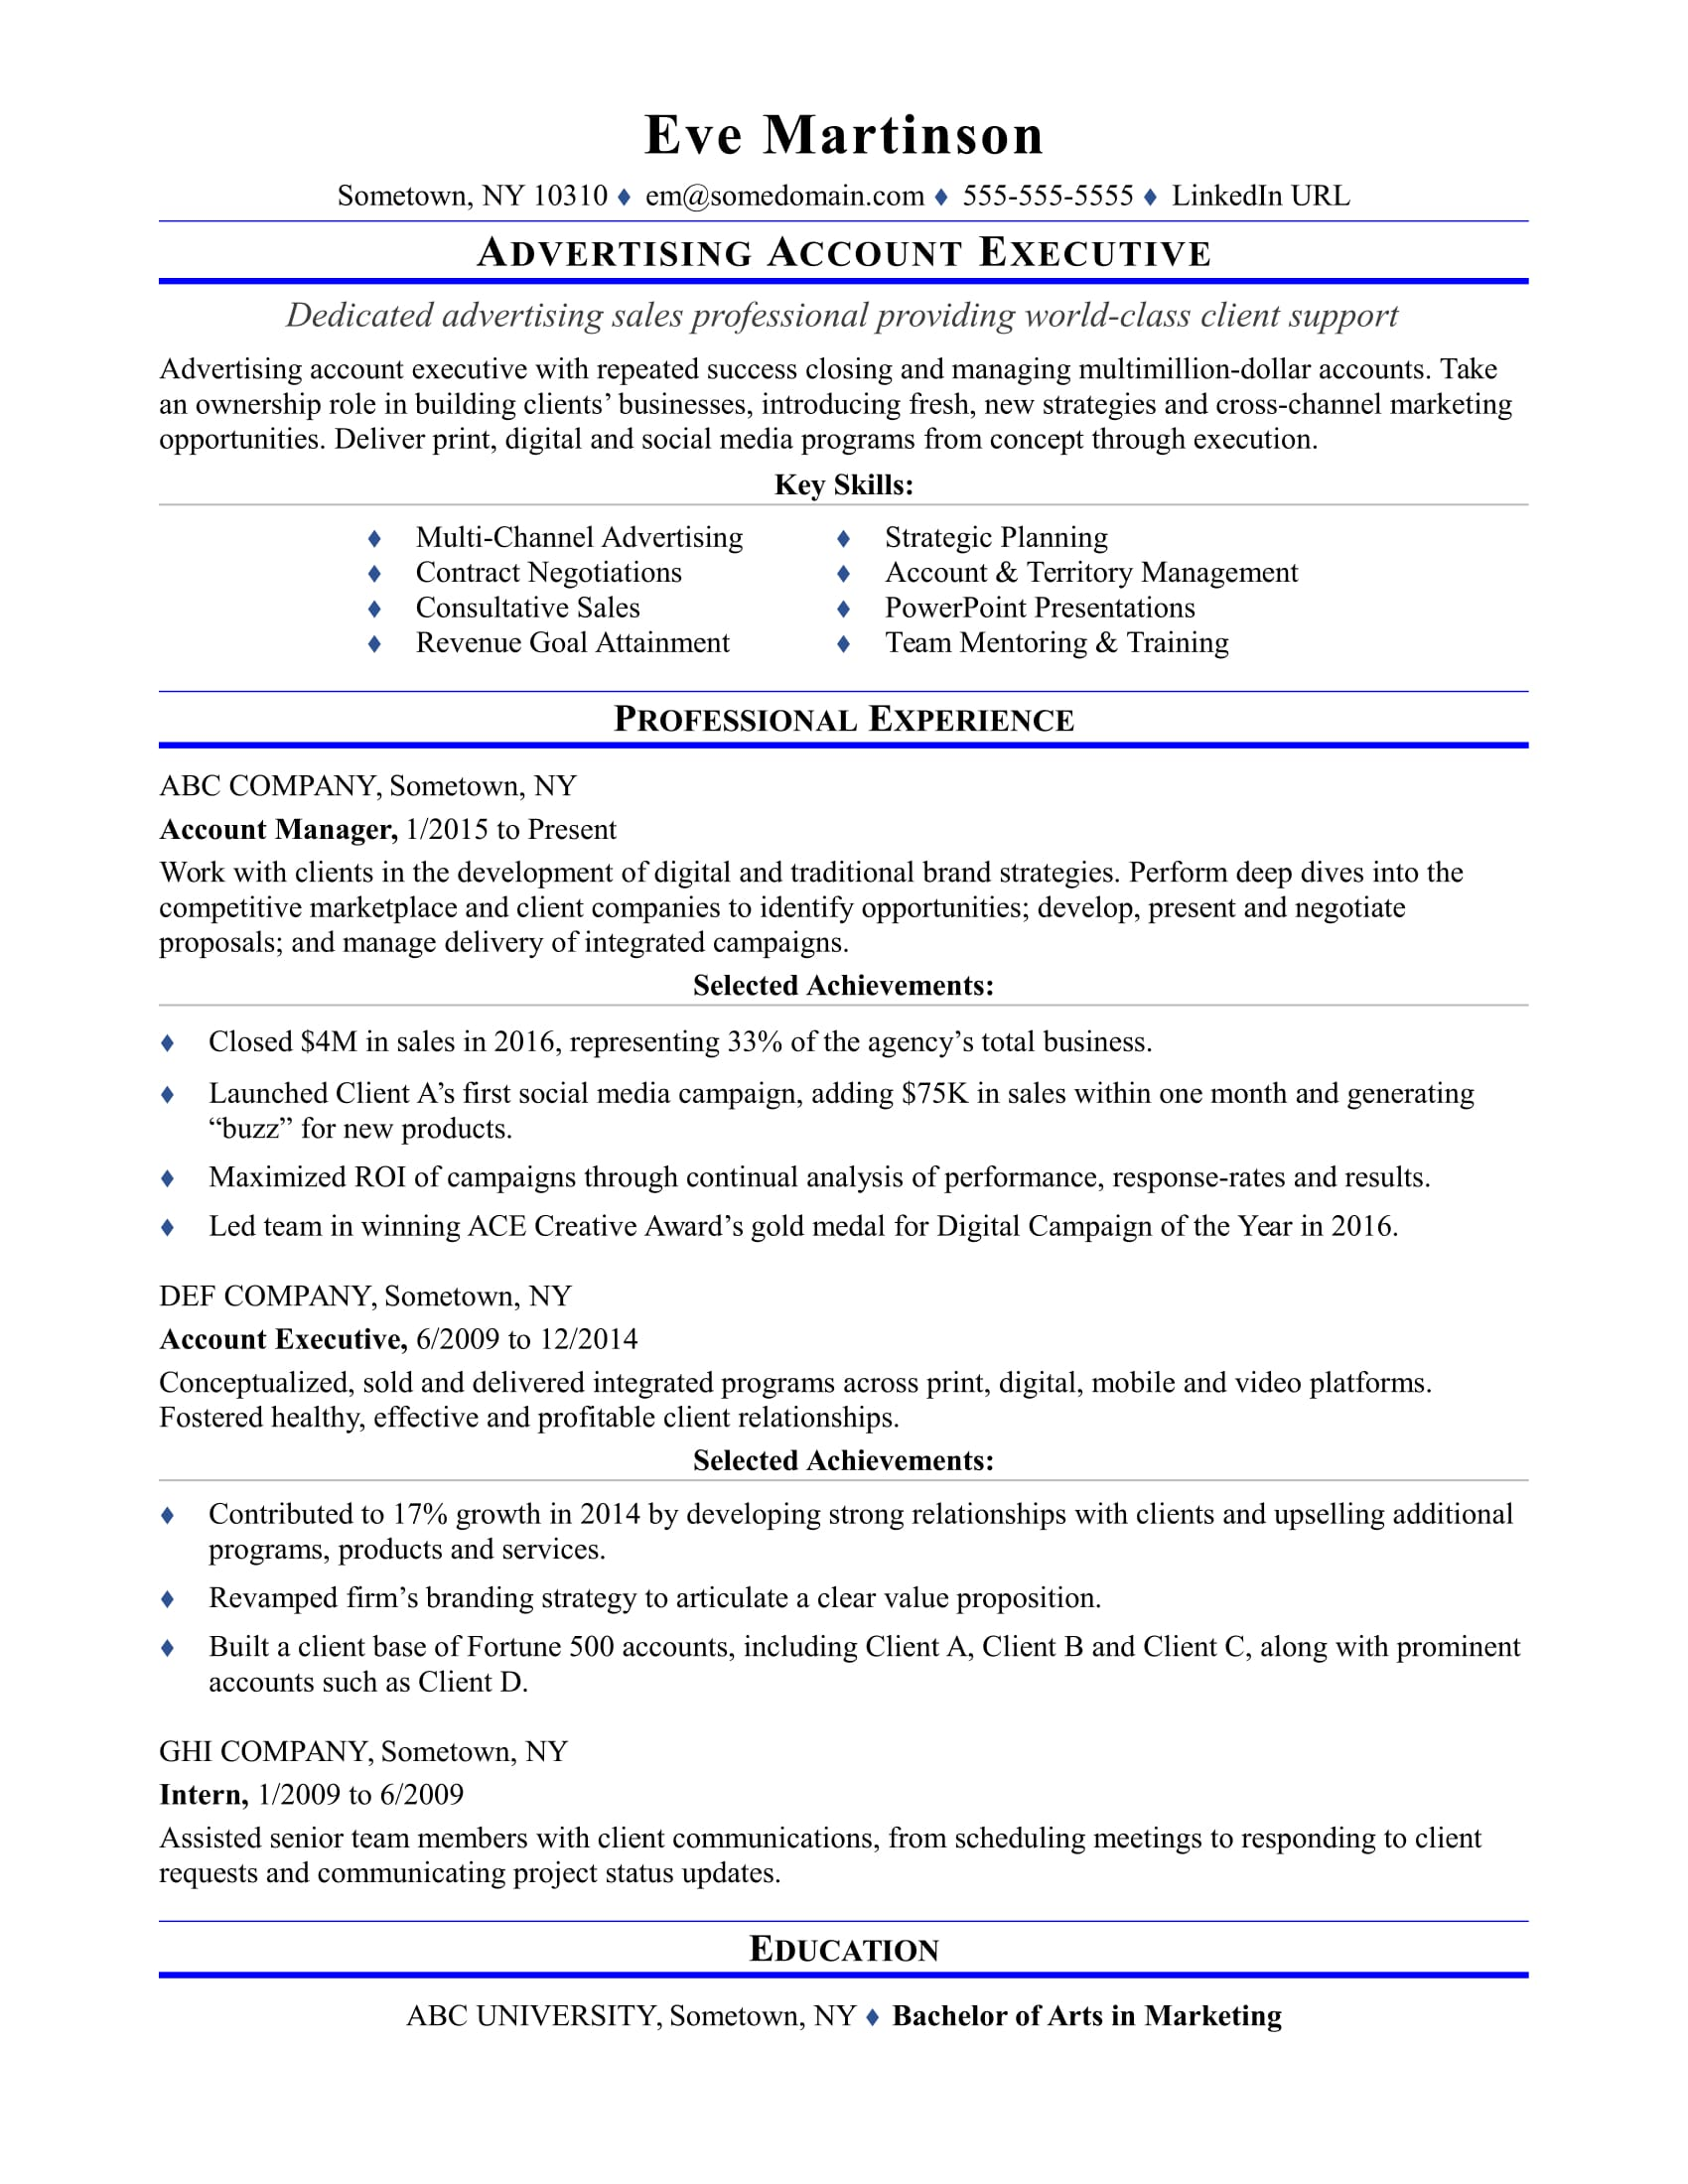 sample resume for an advertising account executive monster media computer network Resume Media Account Executive Resume